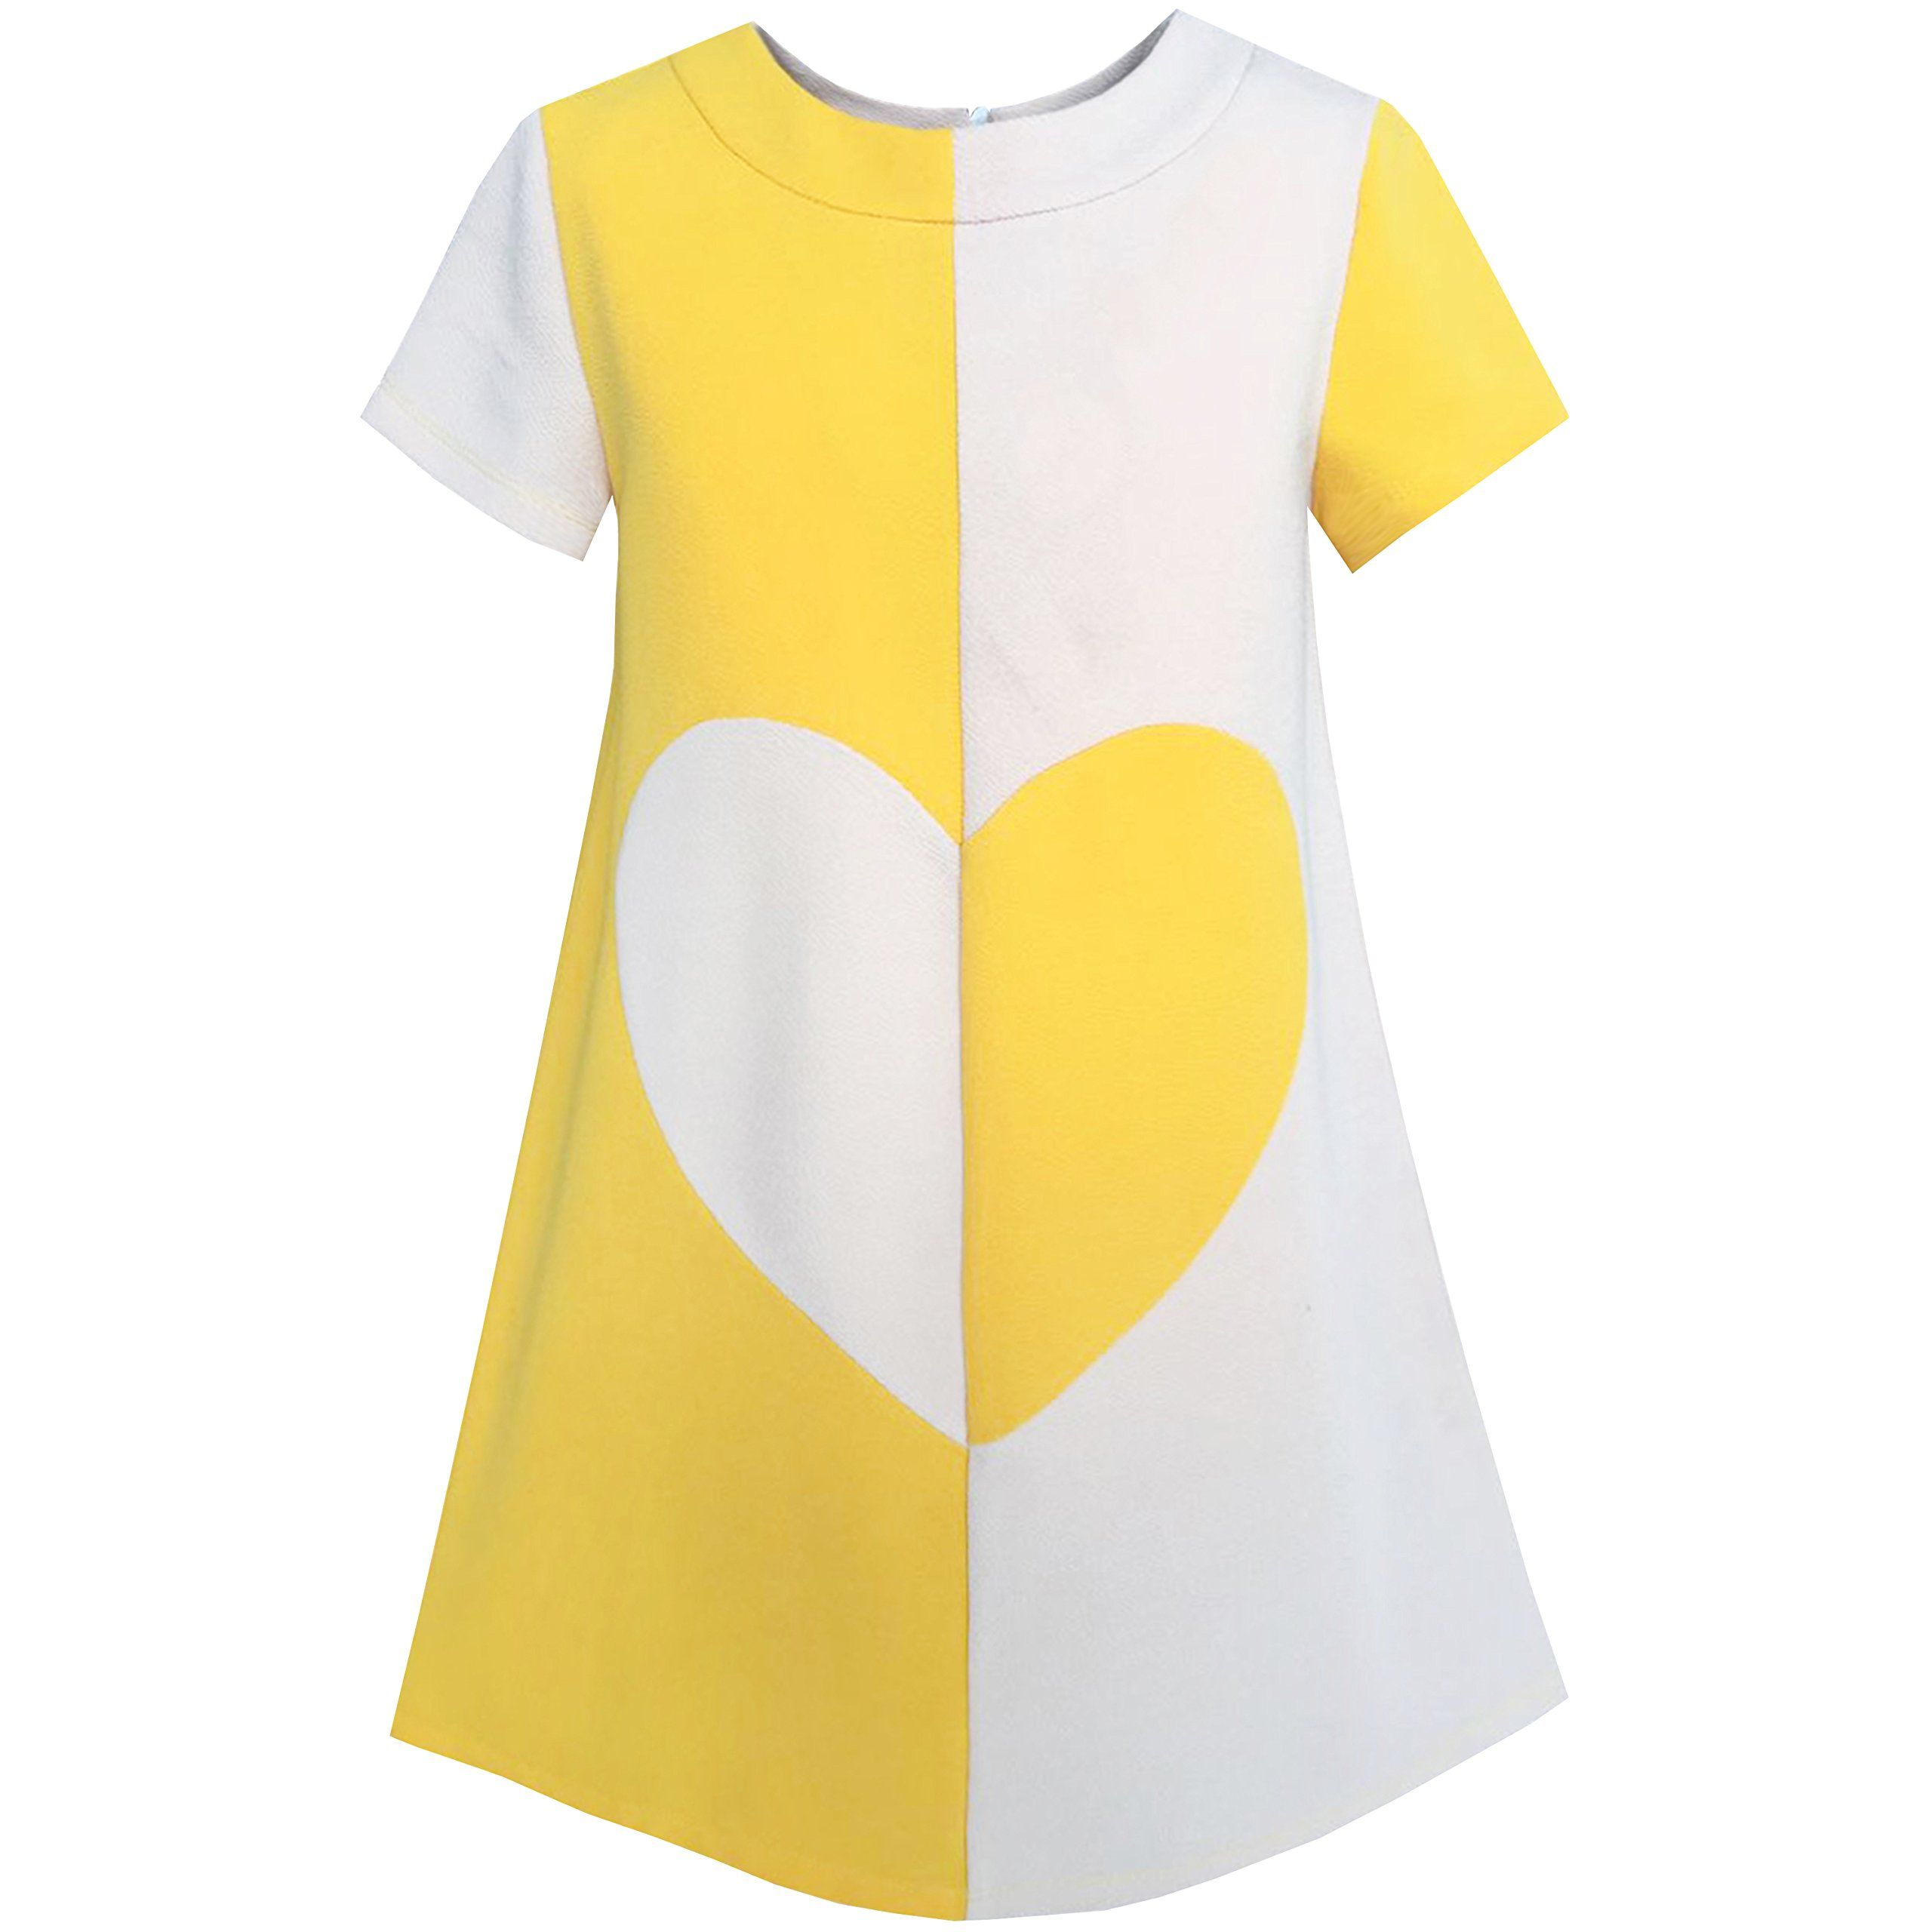 Yellow dress knee length  KH Girls Dress Color Contrast Heart Aline Size  Polyester